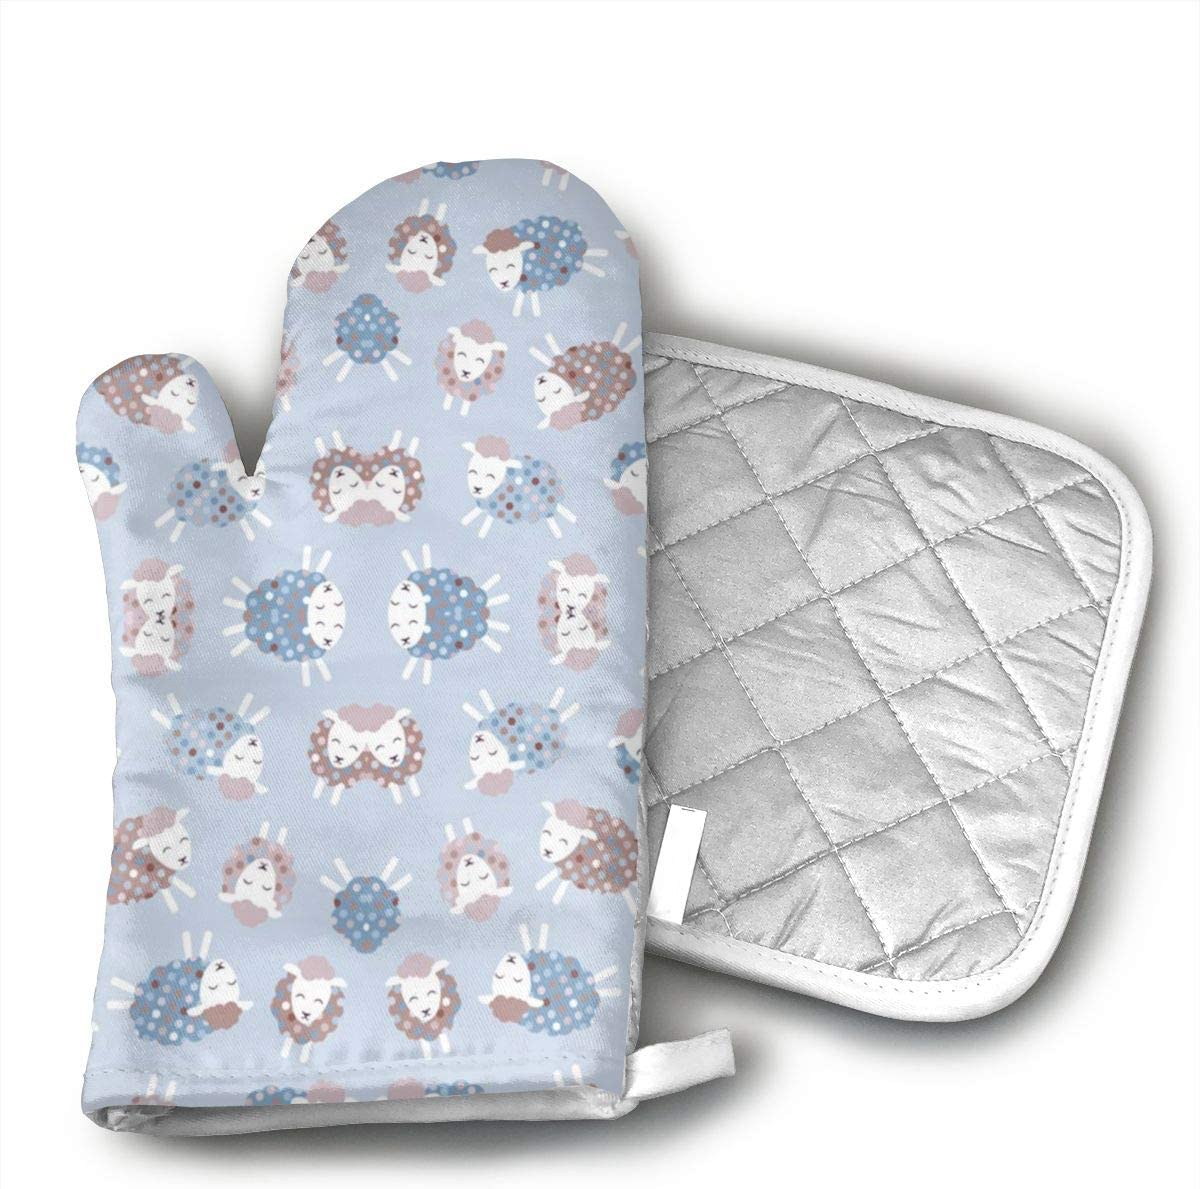 JFNNRUOP Ditsy Little Lamb Oven Mitts,with Potholders Oven Gloves,Insulated Quilted Cotton Potholders